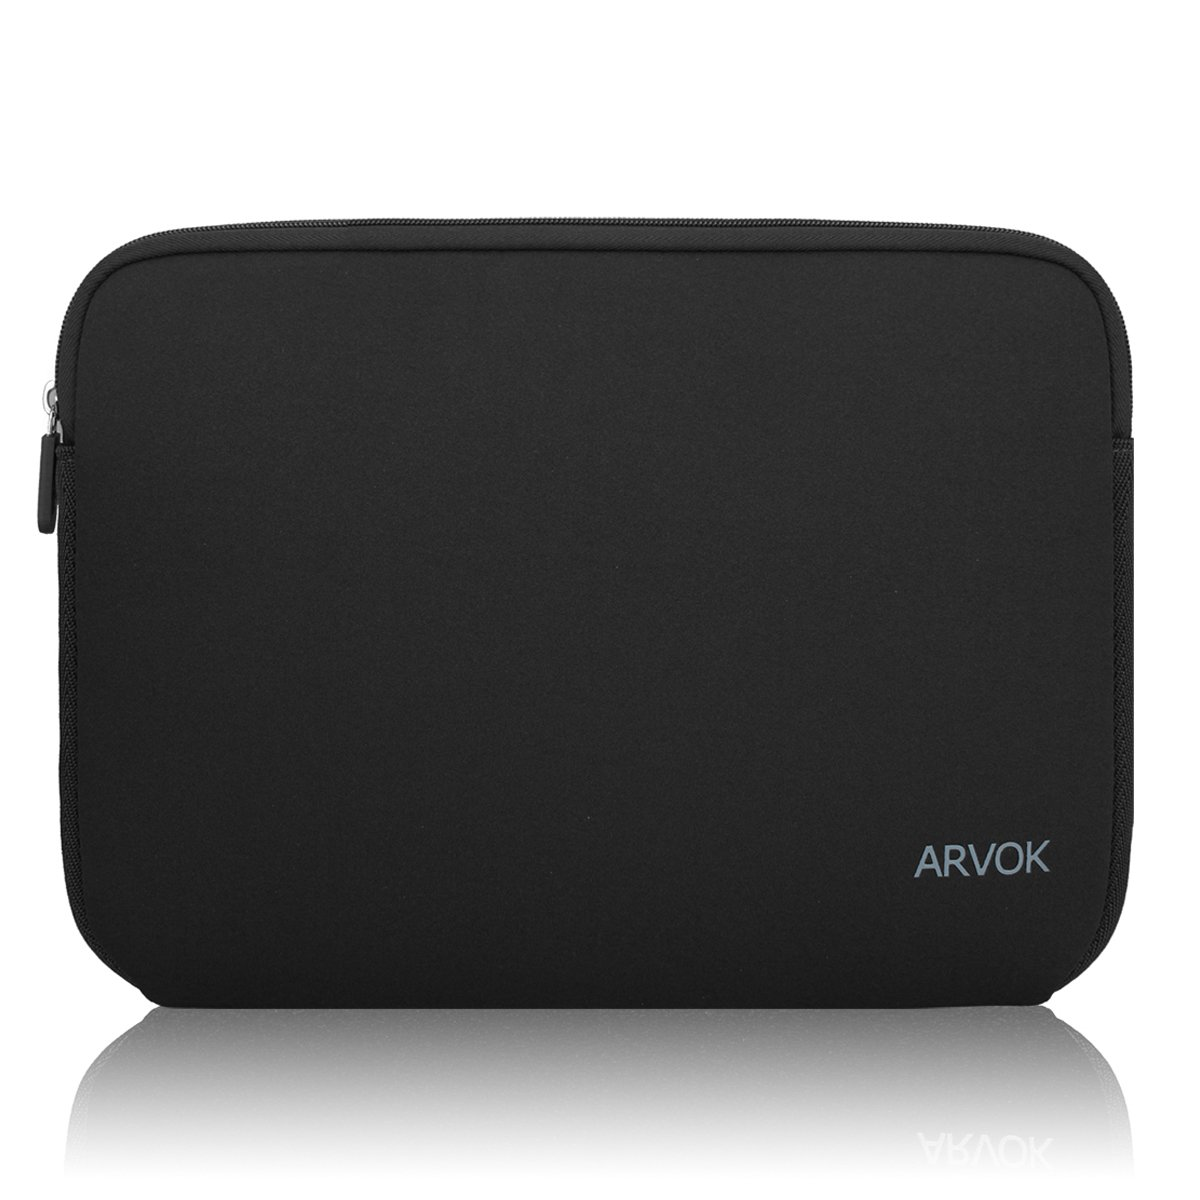 Arvok 17-17.3 Inch Laptop Sleeve Multi-color & Size Choices Case/Water-resistant Neoprene Notebook Computer Pocket Tablet Briefcase Carrying Bag/Pouch Skin Cover For Acer/Asus/Dell/Lenovo, Black